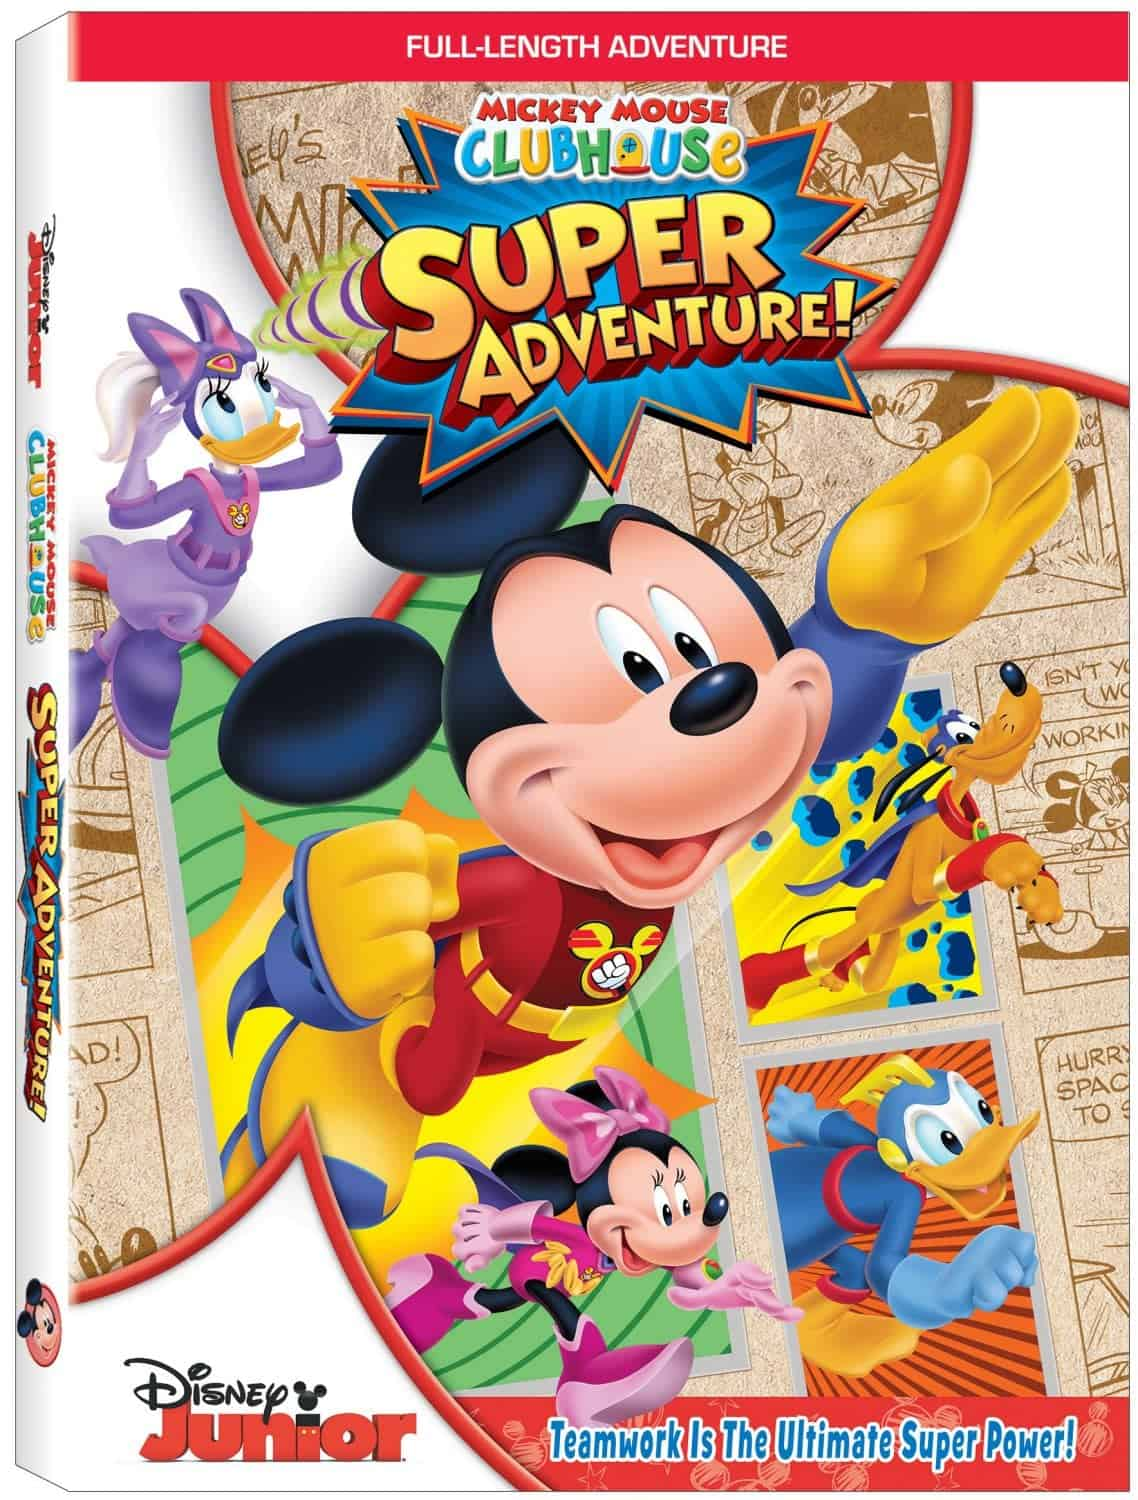 Product Review: Mickey Mouse Clubhouse Super Adventure